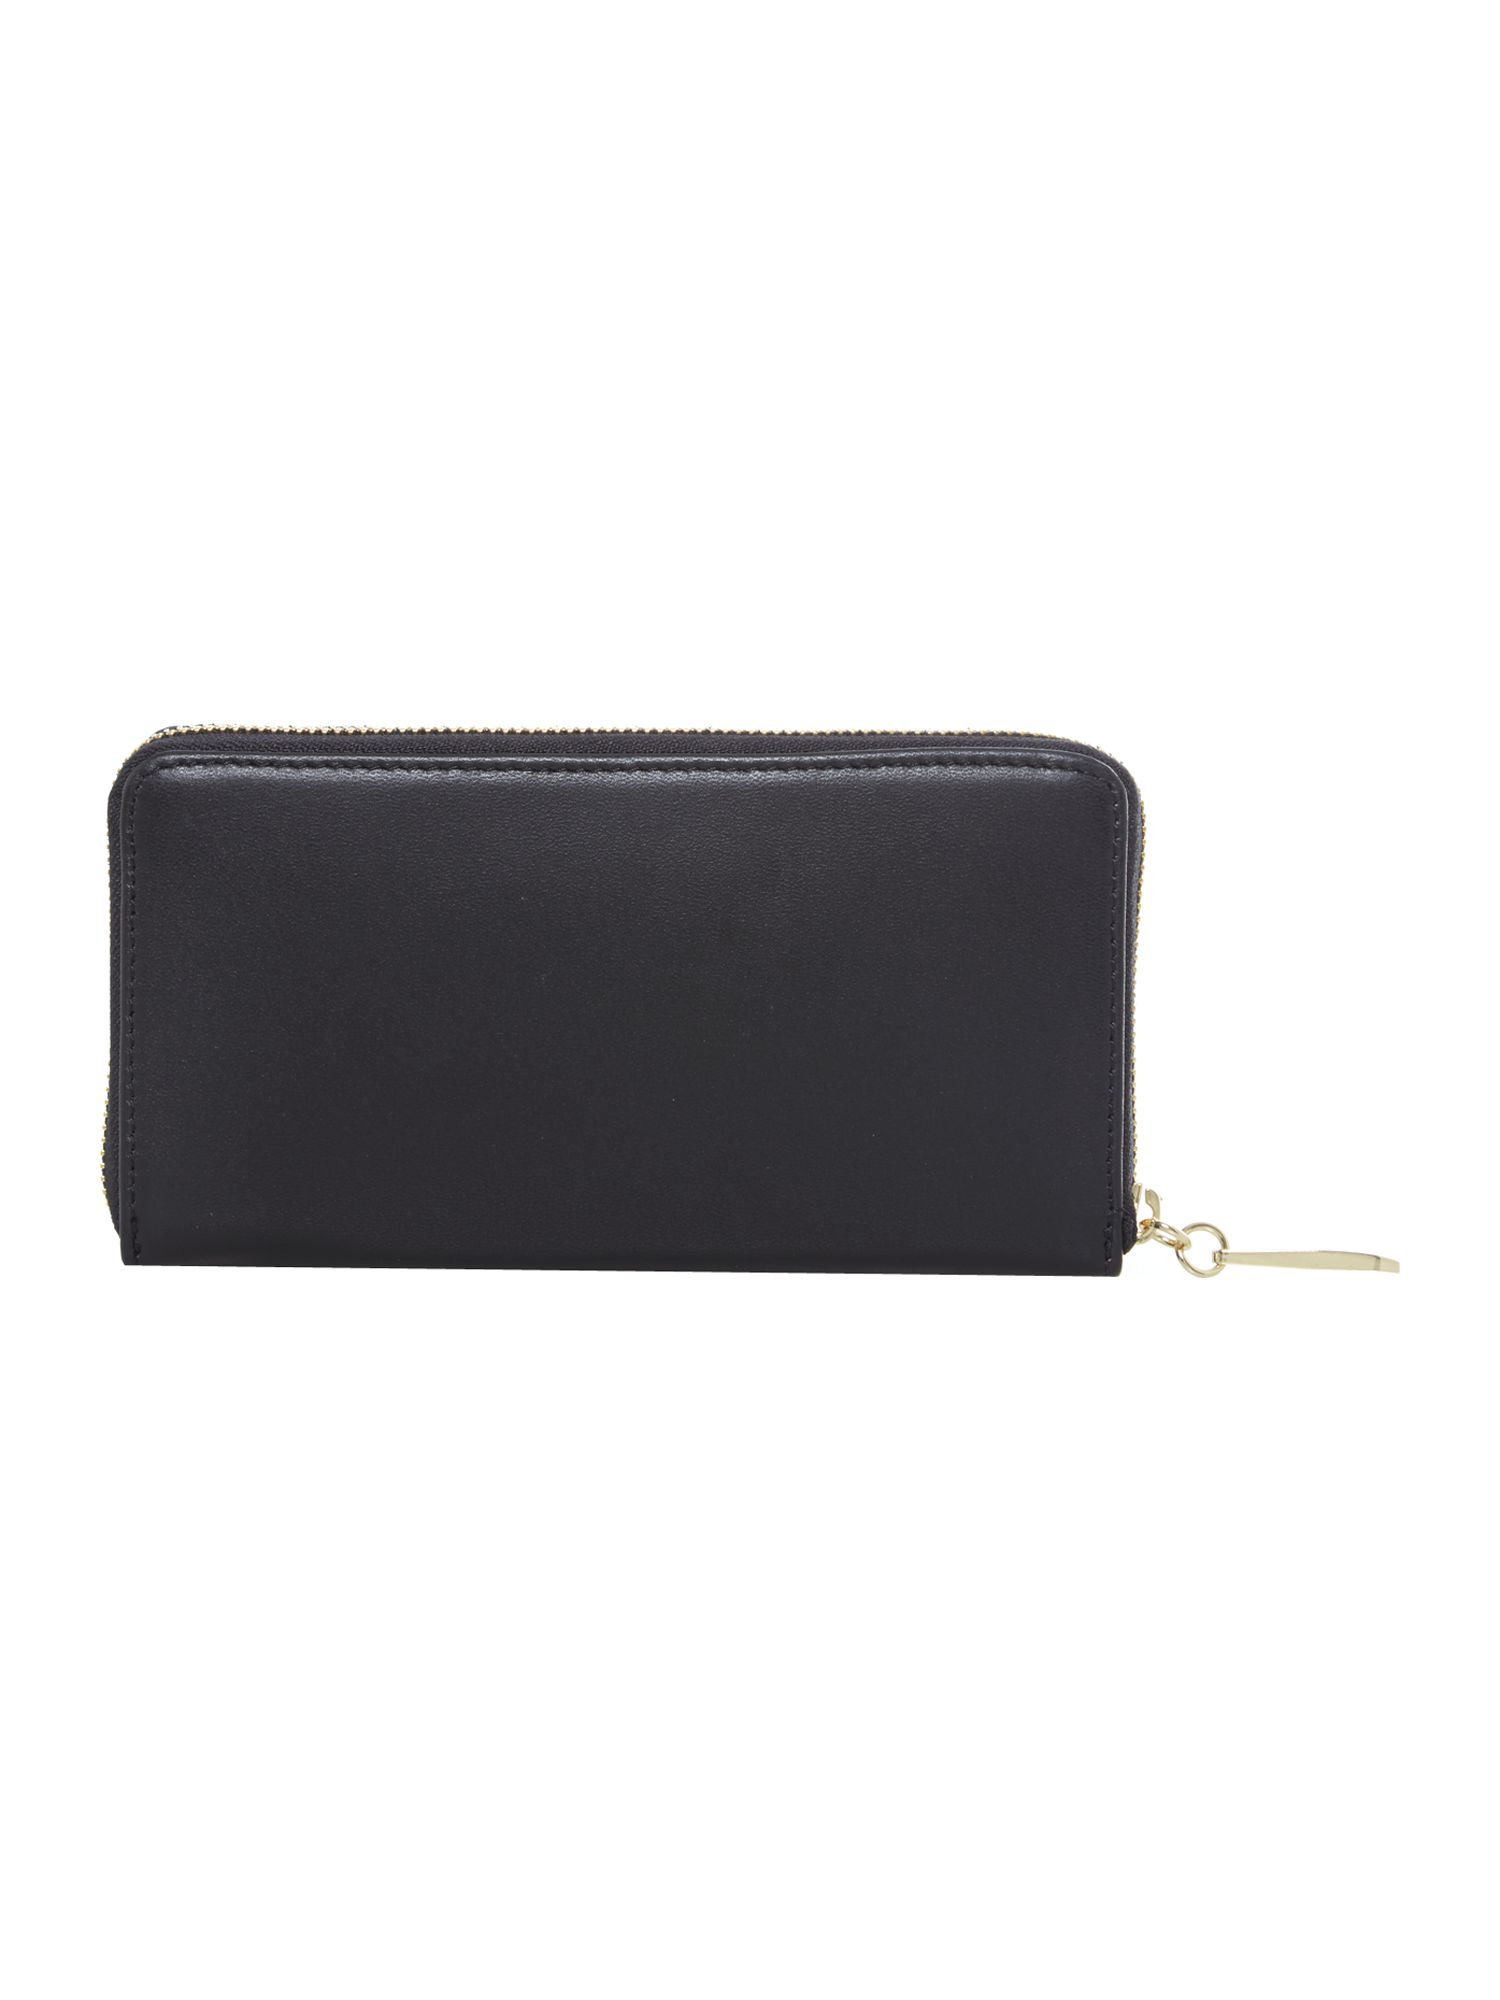 Ruby zip around purse